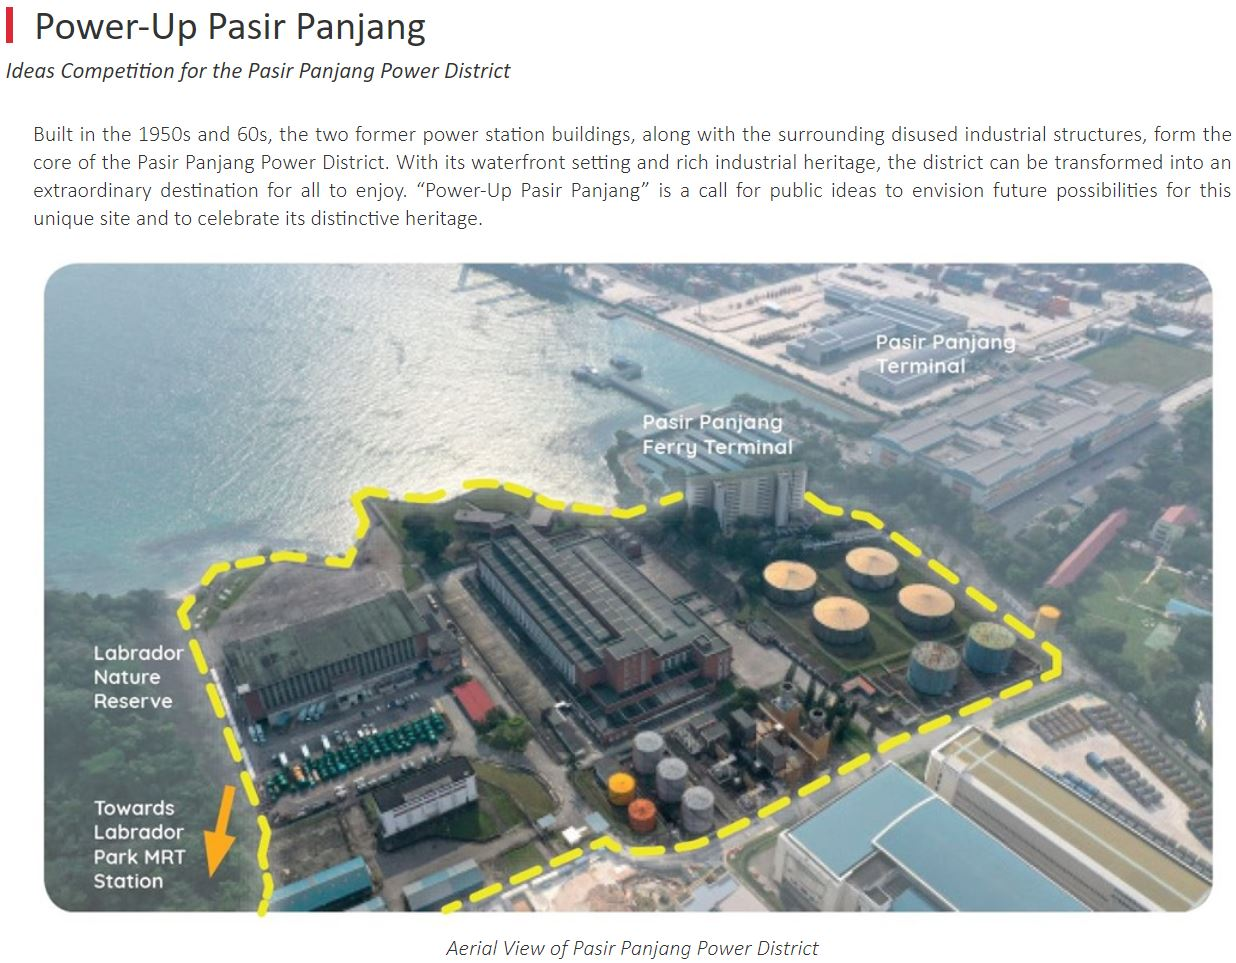 avenue-south-residence-greater-southern-waterfront-article-2-singapore